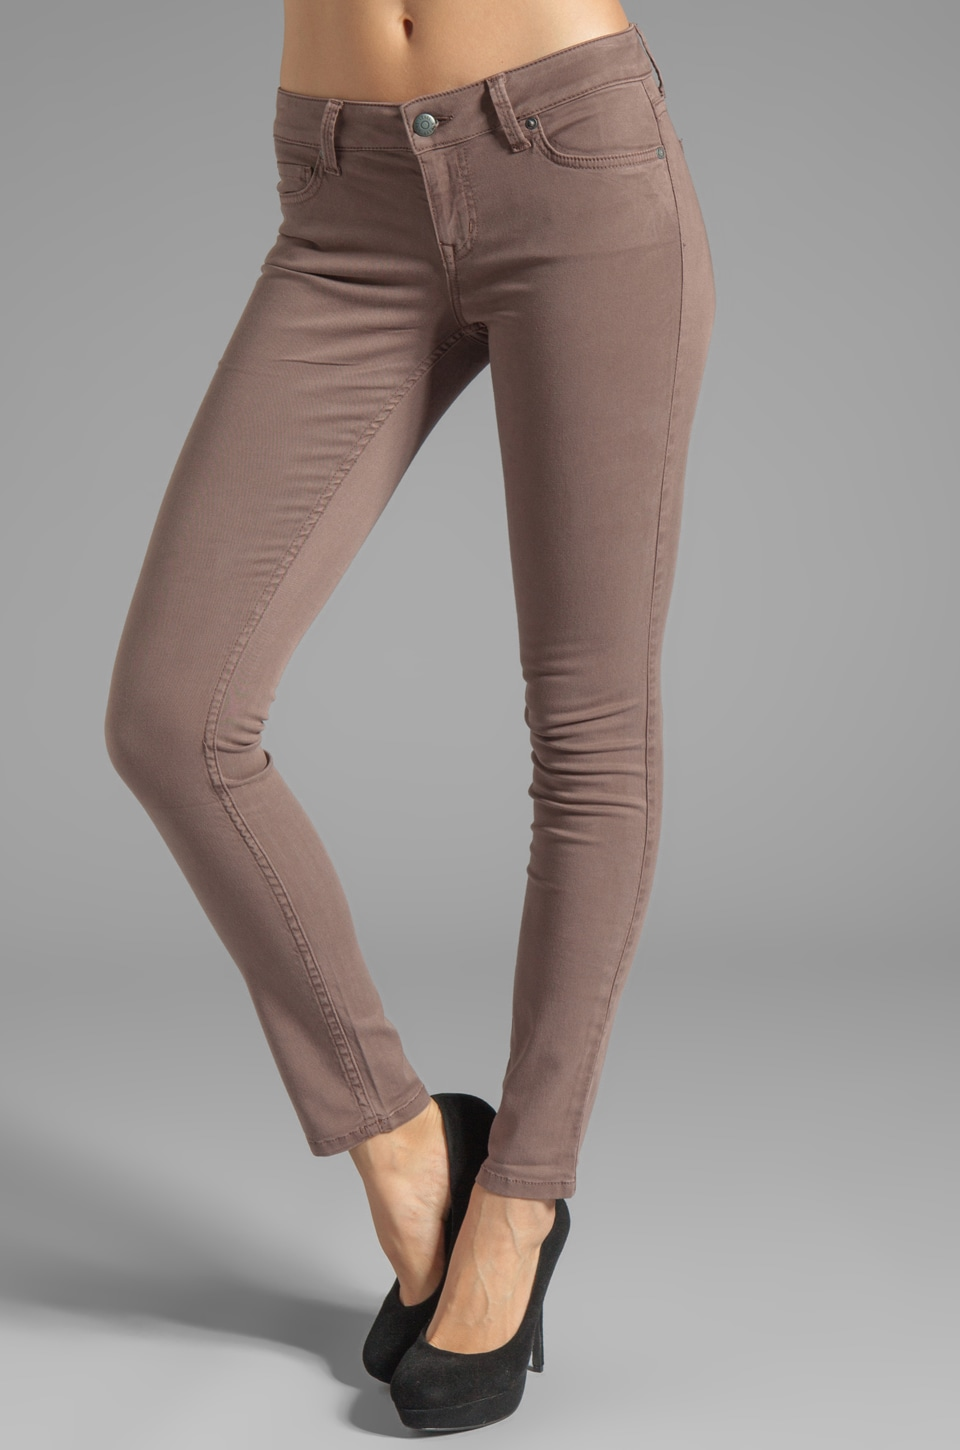 Level 99 Liza Skinny in Hazelnut